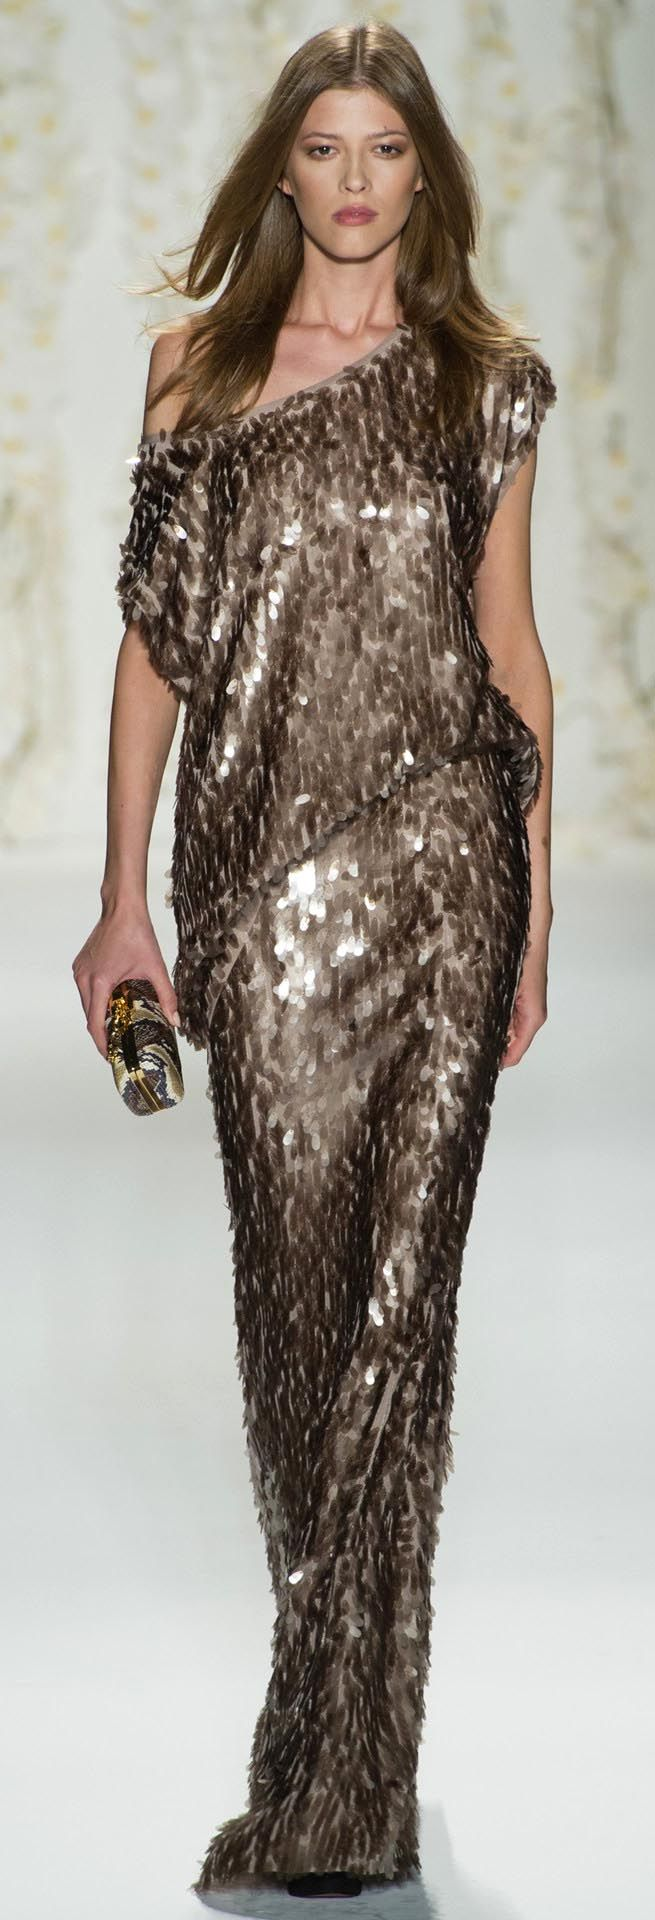 Rachel Zoe Spring 2013 New York Fashion Week